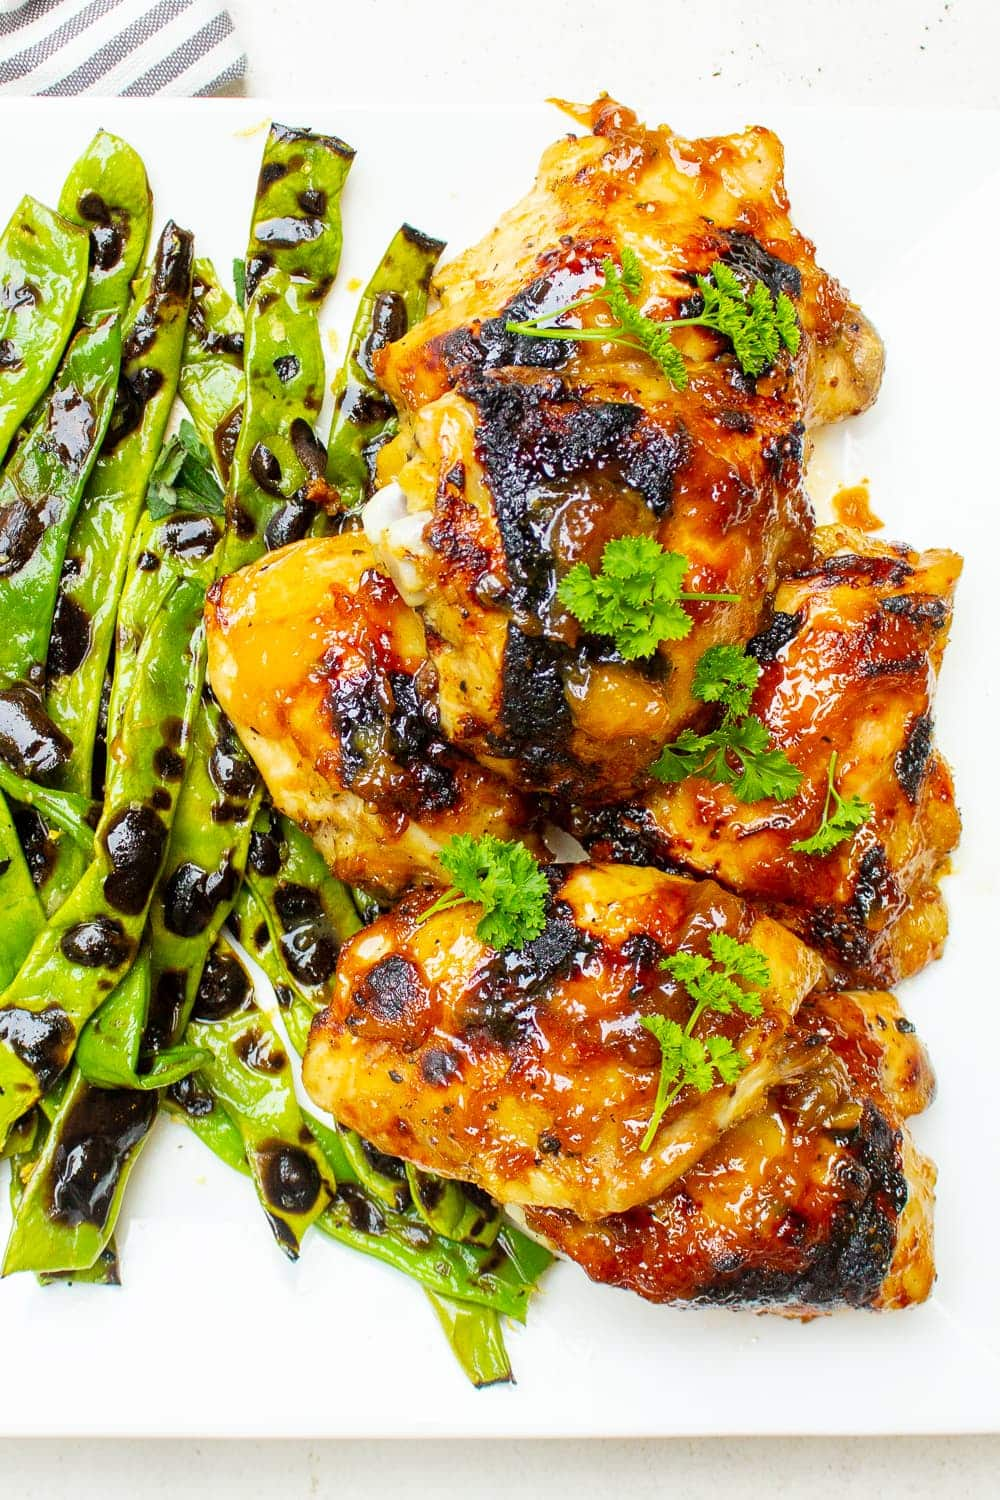 glazed chicken thighs with green beans on plate p2